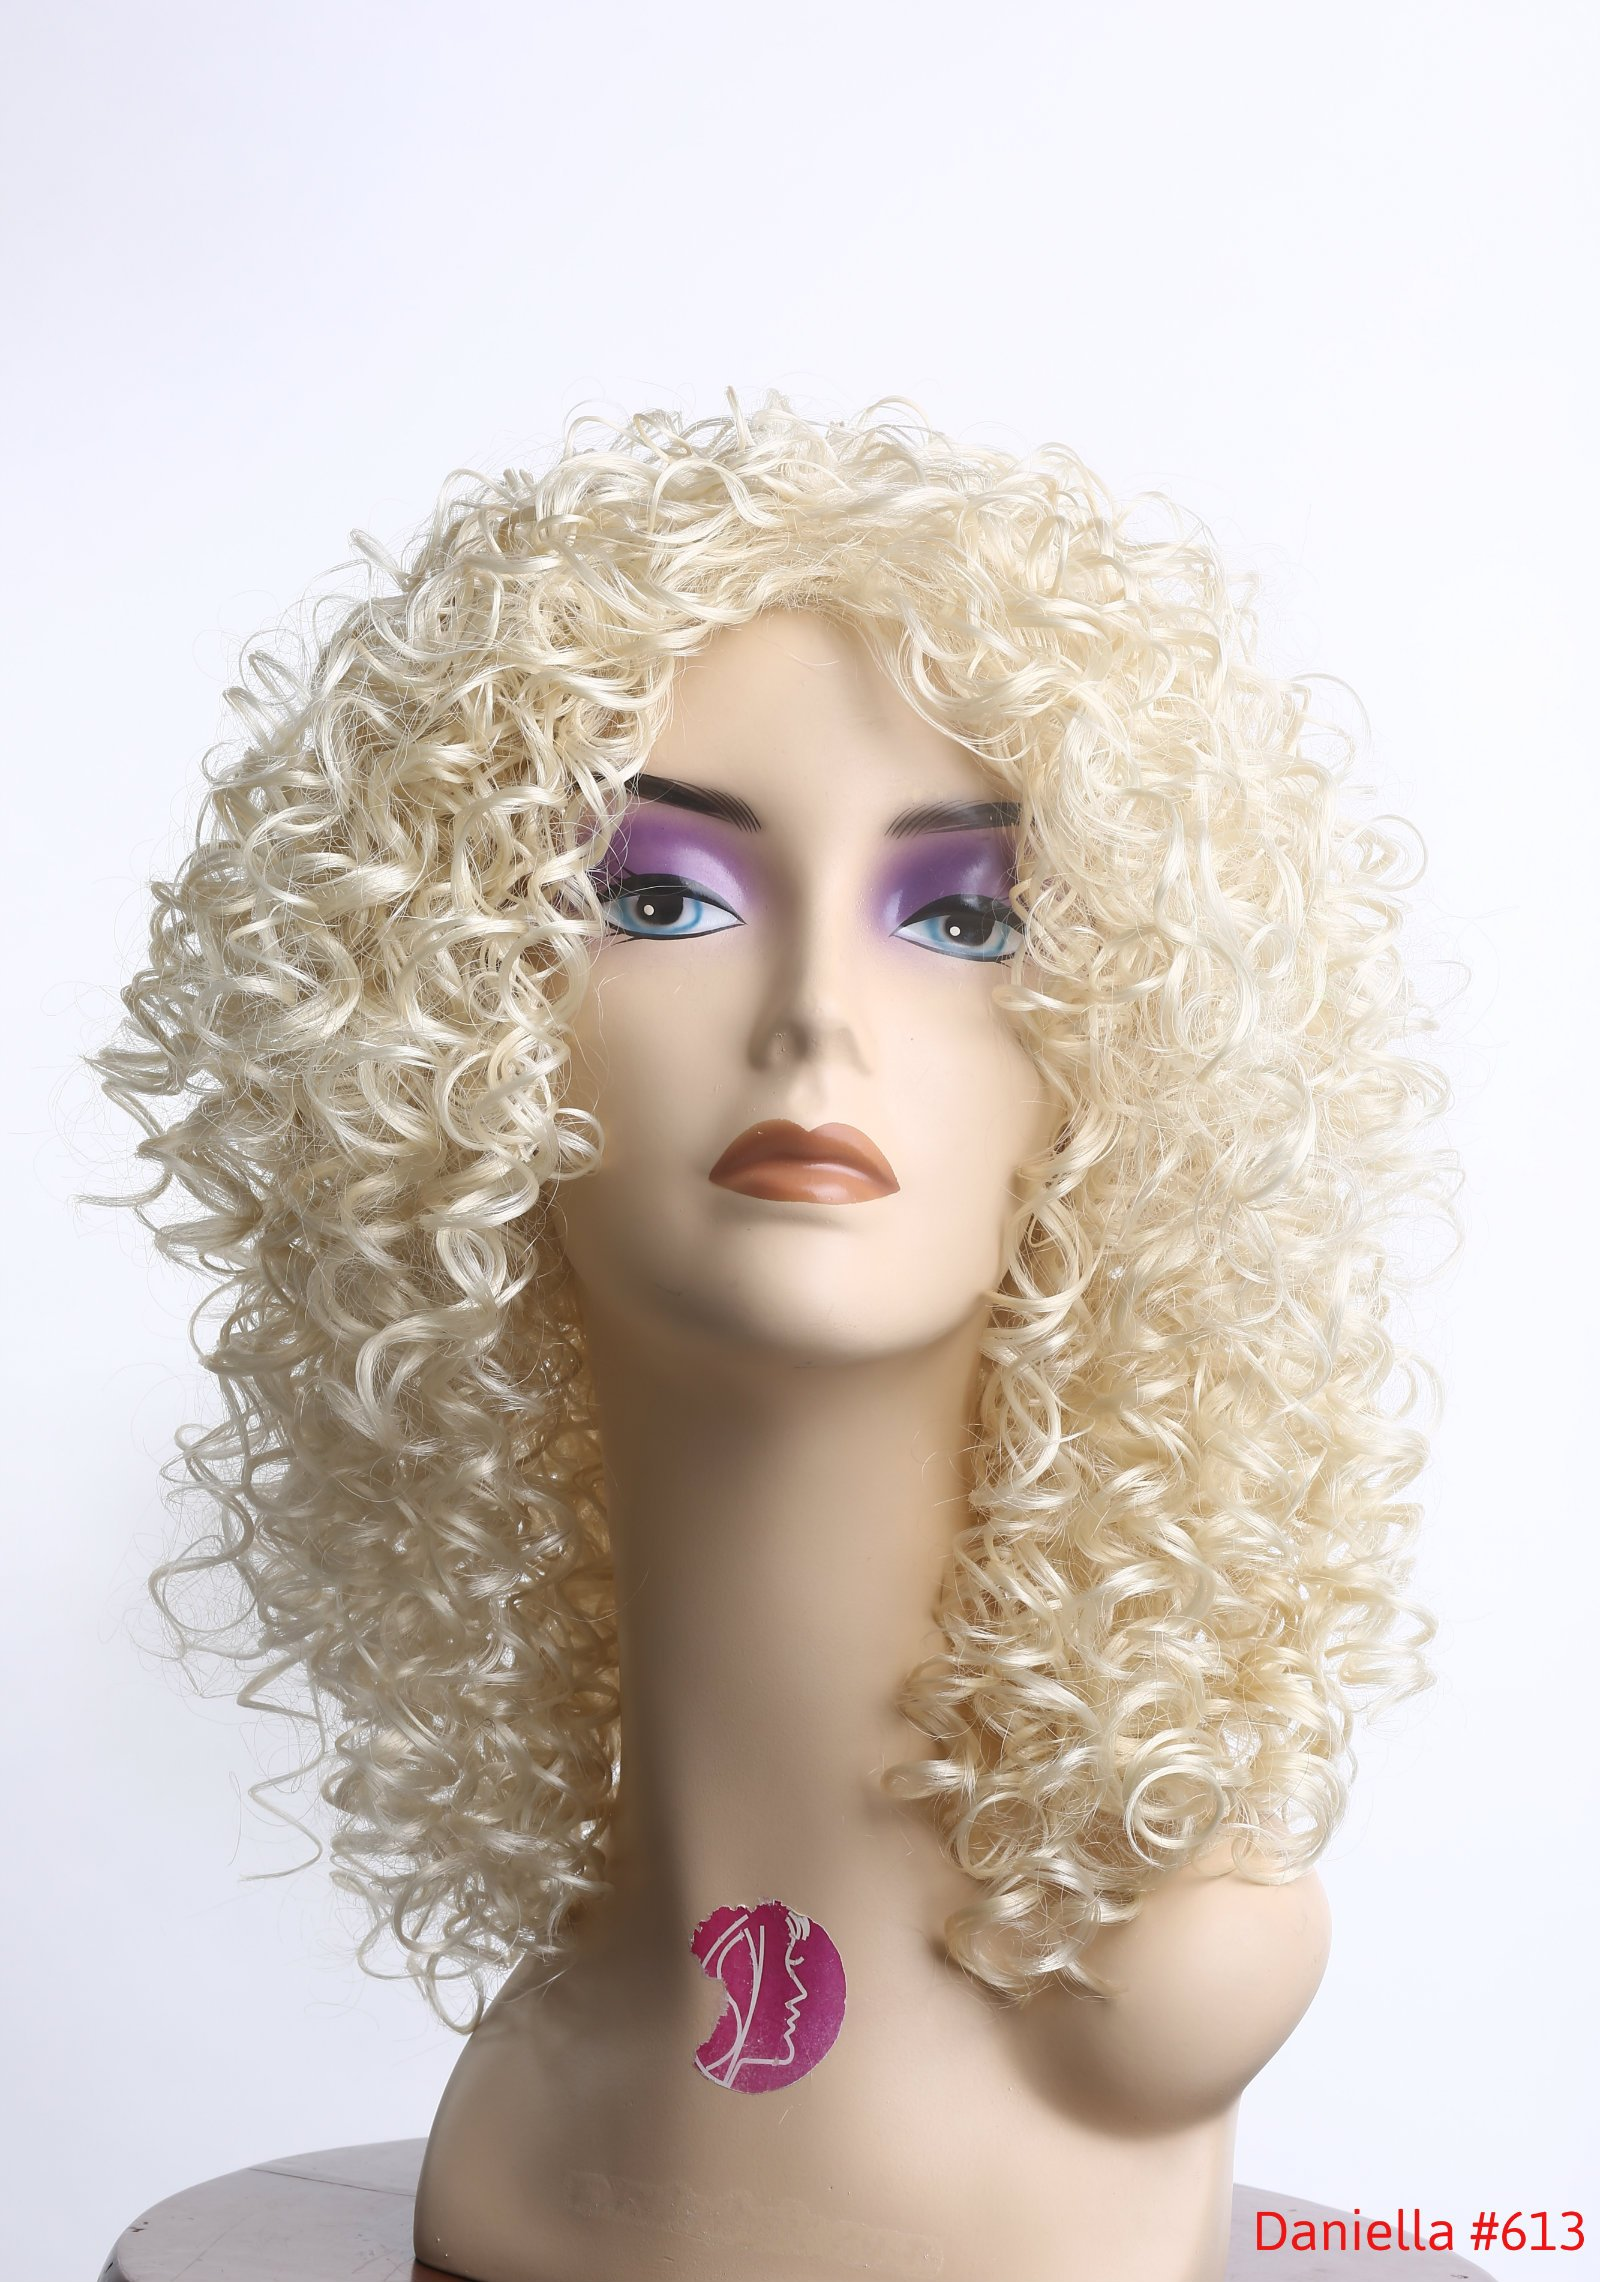 14'' Curly Wig Long Layered Light/Bleach/Patinum Blonde Looking Natural for Regular Wear or Party Cosplay Heat Friendly Fire Resistant Kanekalon (Bonus: 2 Wig Caps Provided)